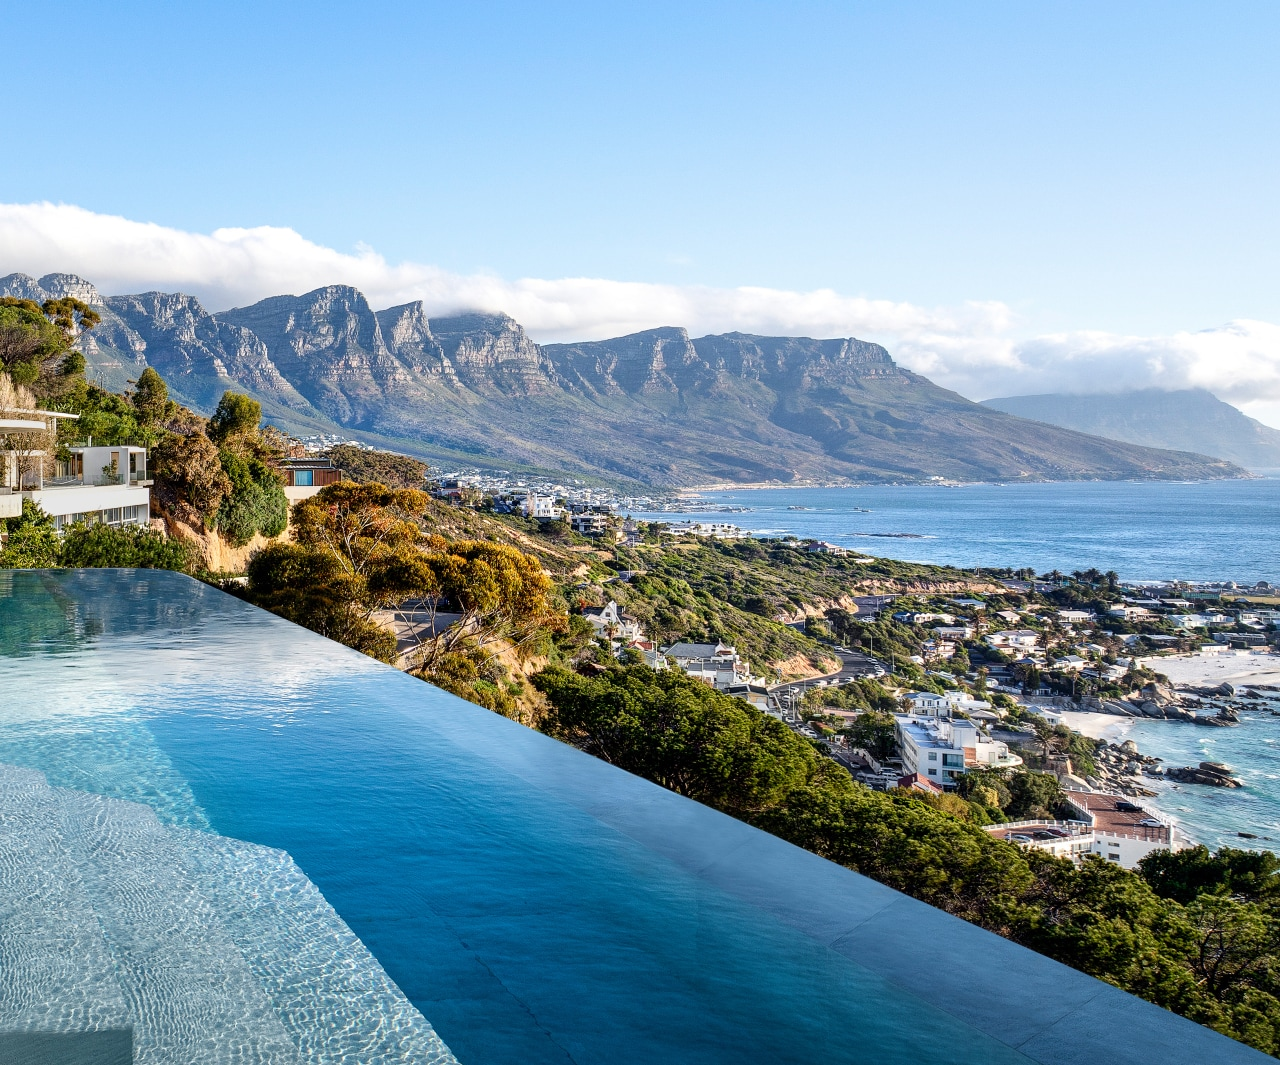 The infinity edge pool enhances to the mountain azure, bay, blue, caribbean, coast, coastal and oceanic landforms, hill, house, landscape, leisure, mountain, mountain range, natural landscape, ocean, promontory, real estate, resort, resort town, sea, shore, sky, swimming pool, tourism, tropics, vacation, water, teal, white